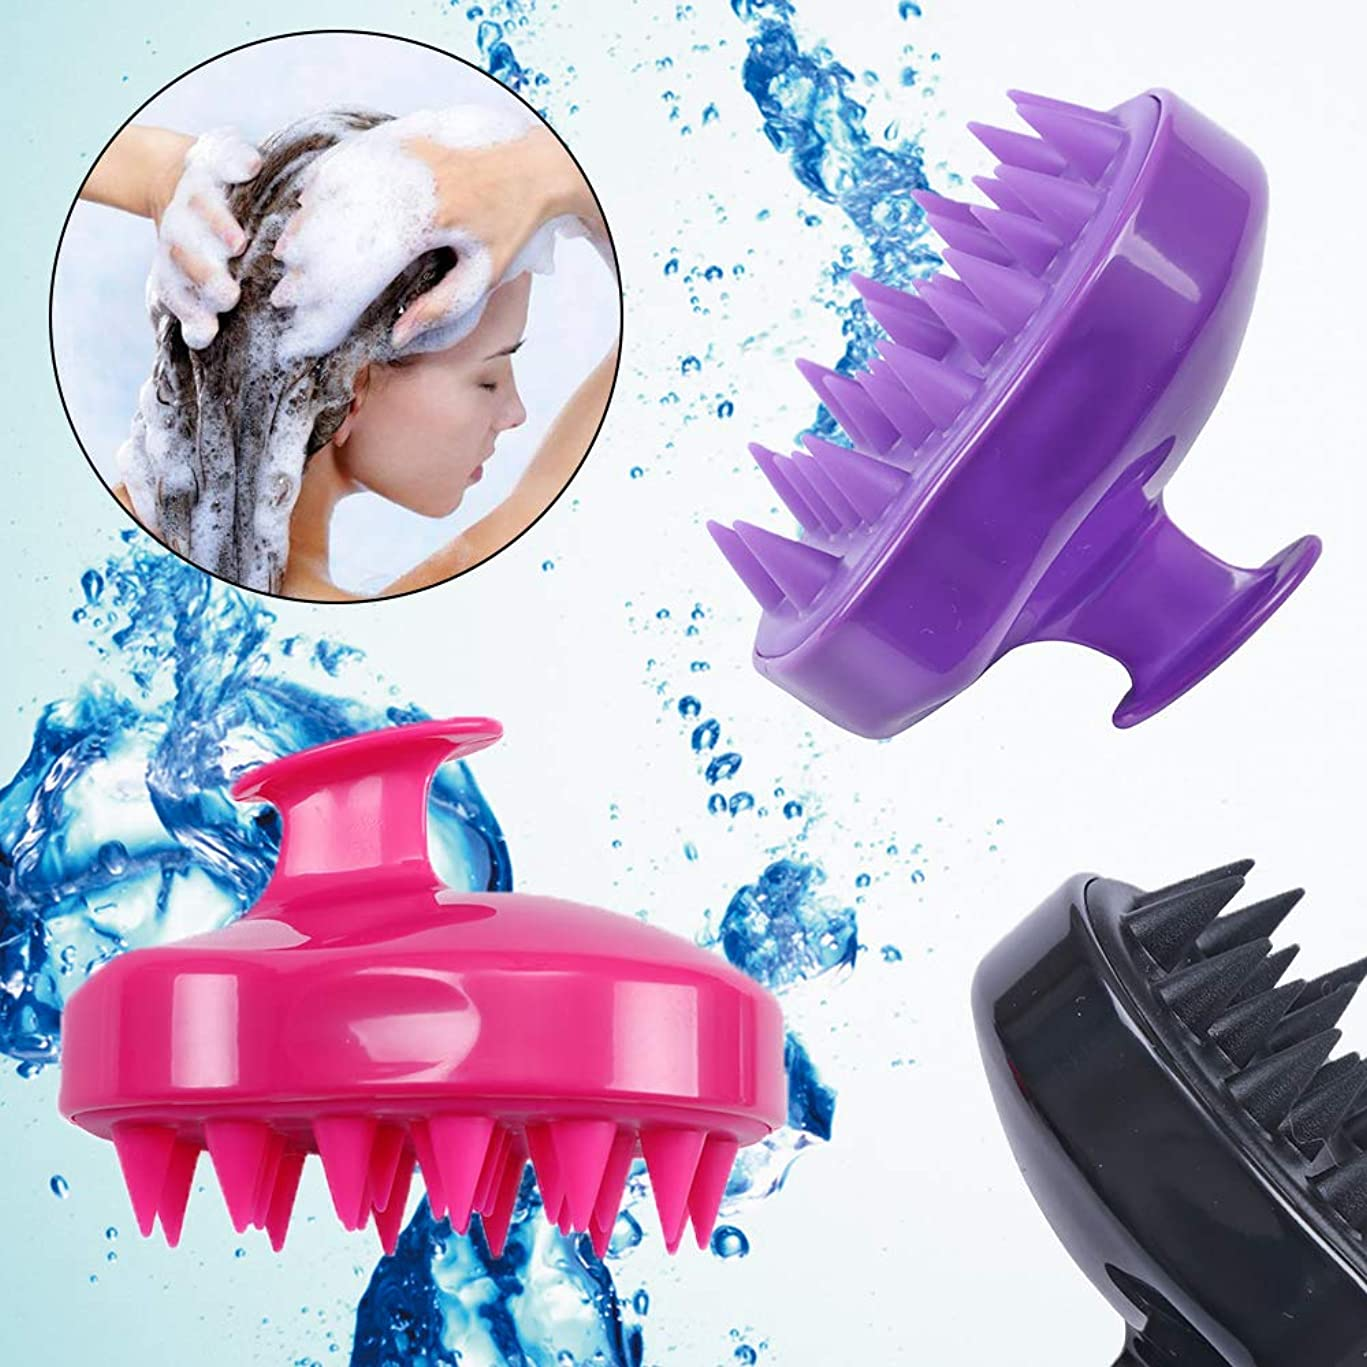 3 Pcs Shampoo Brush Hair Scalp Massaging Brush Soft Silicone Cleaning Comb for Men, Women, Kids and Pet